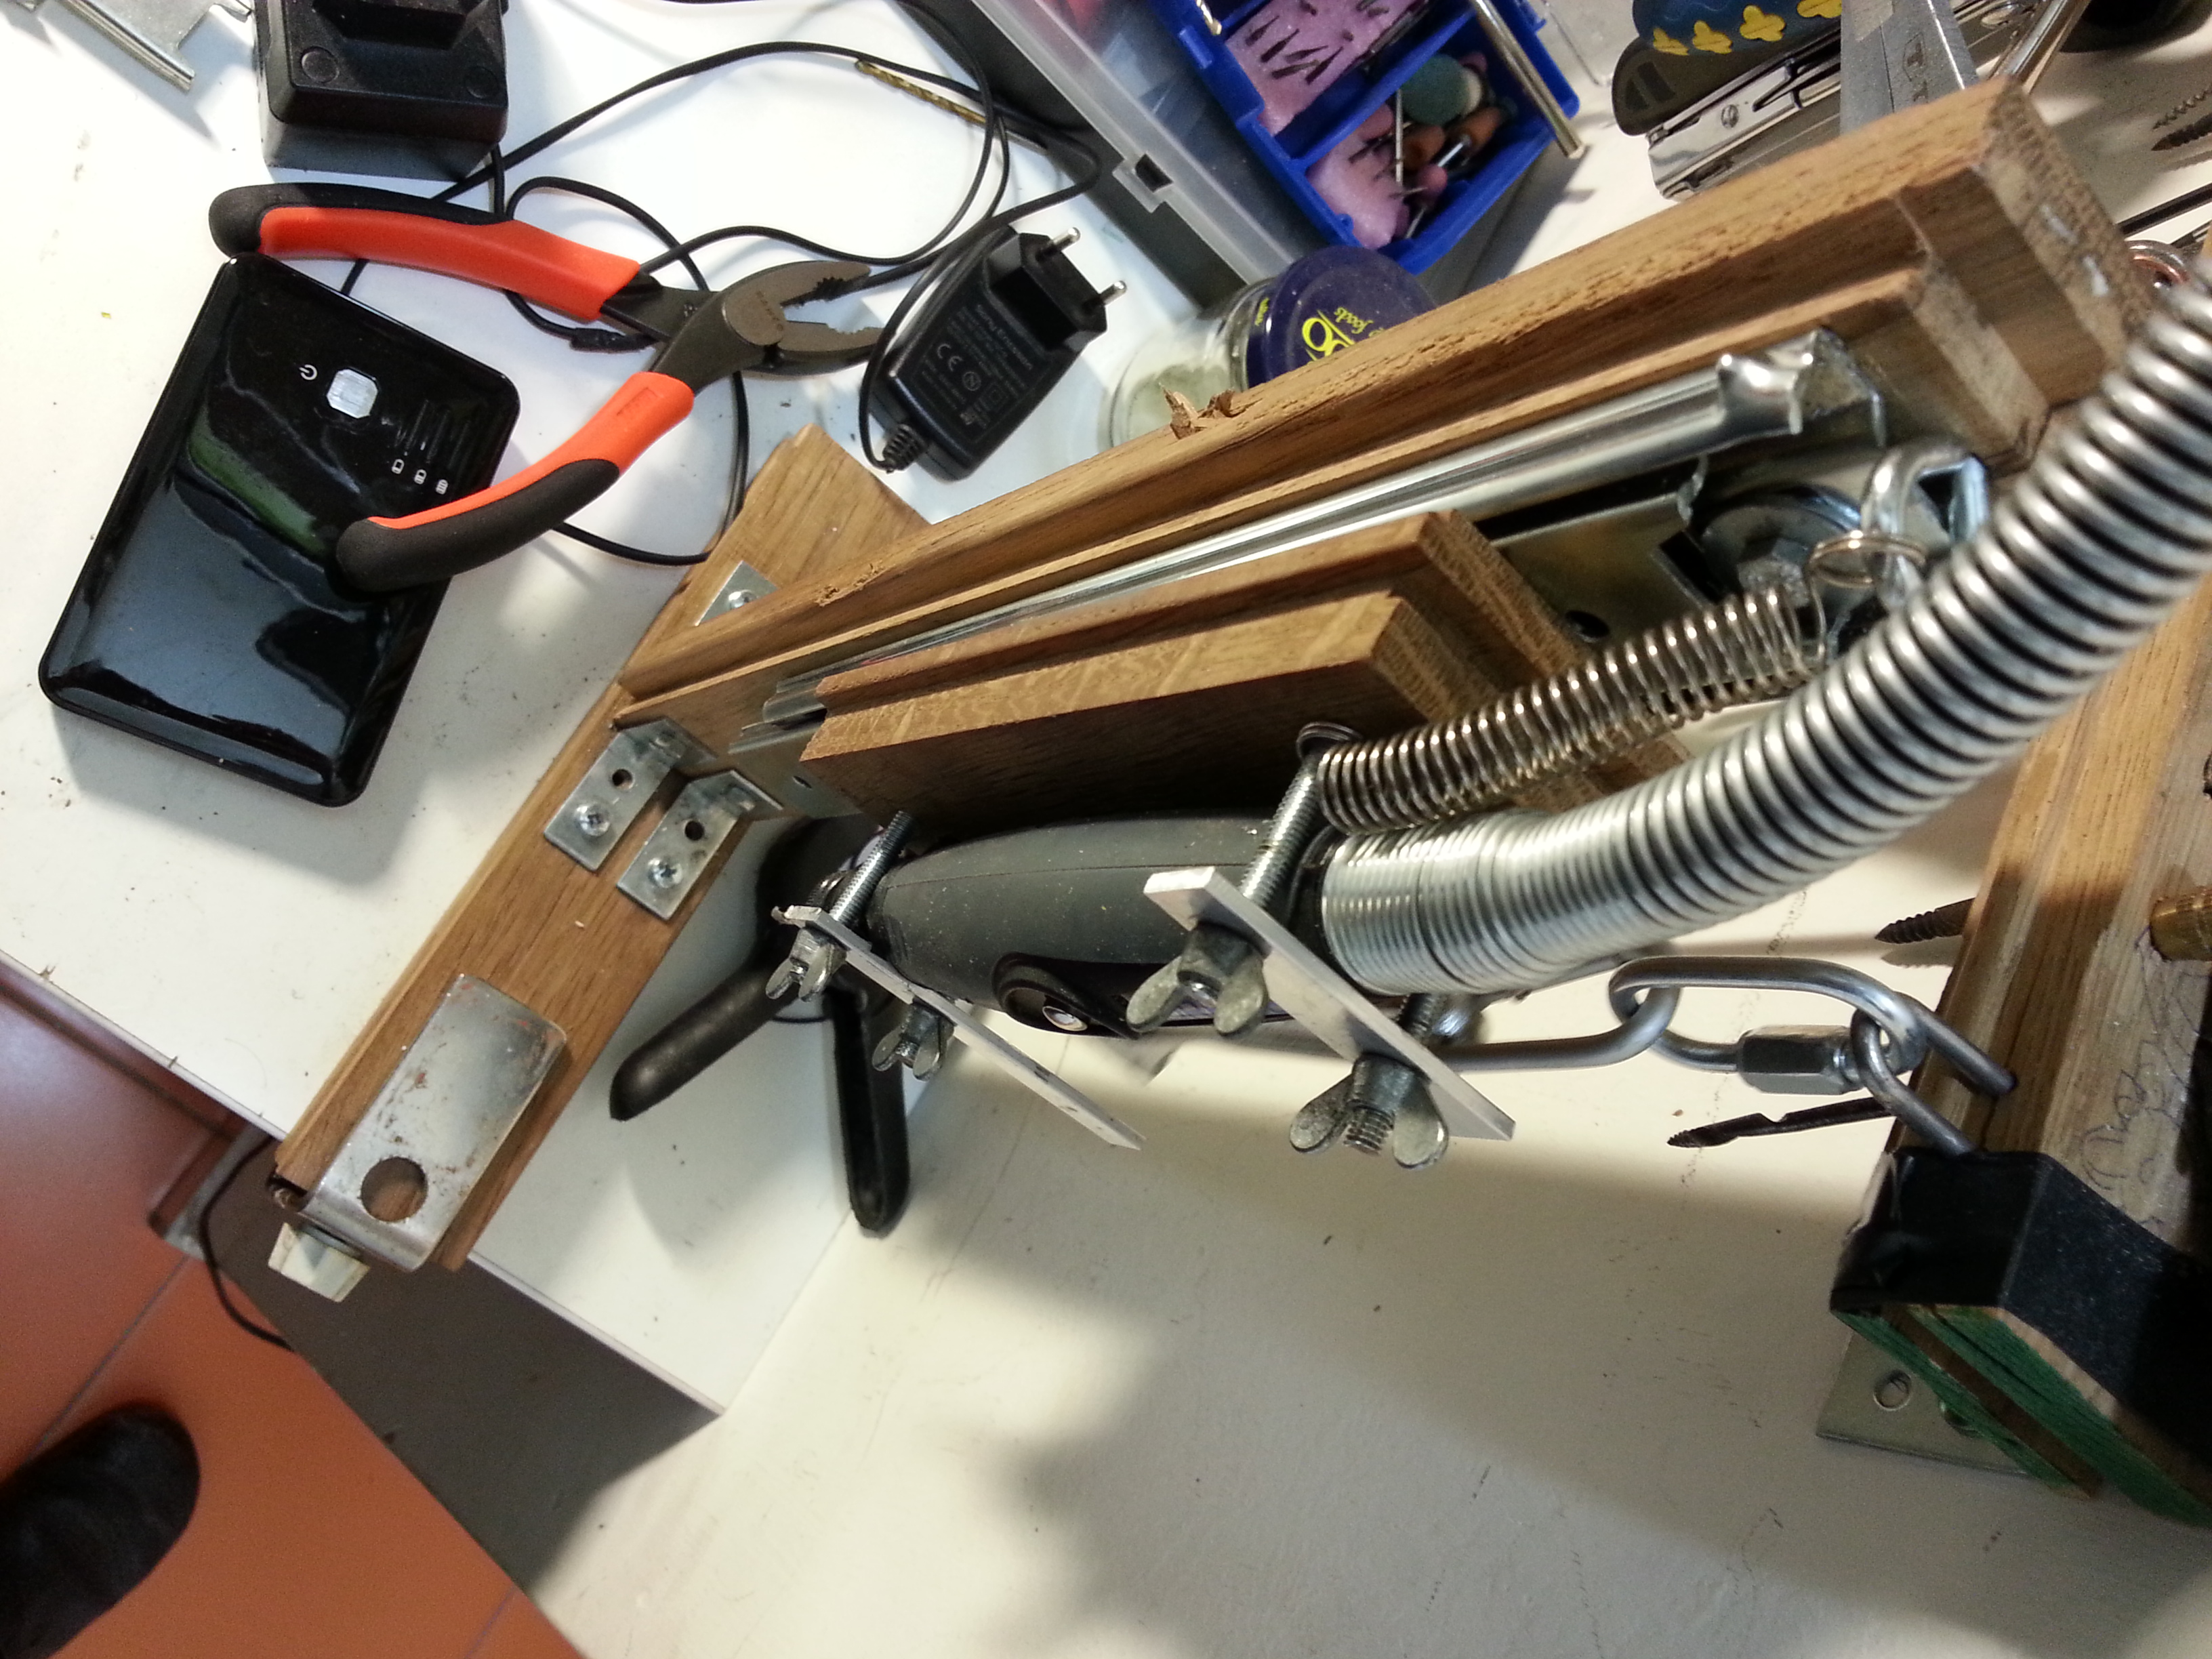 Picture of Drill Press With Dremel Flexshaft